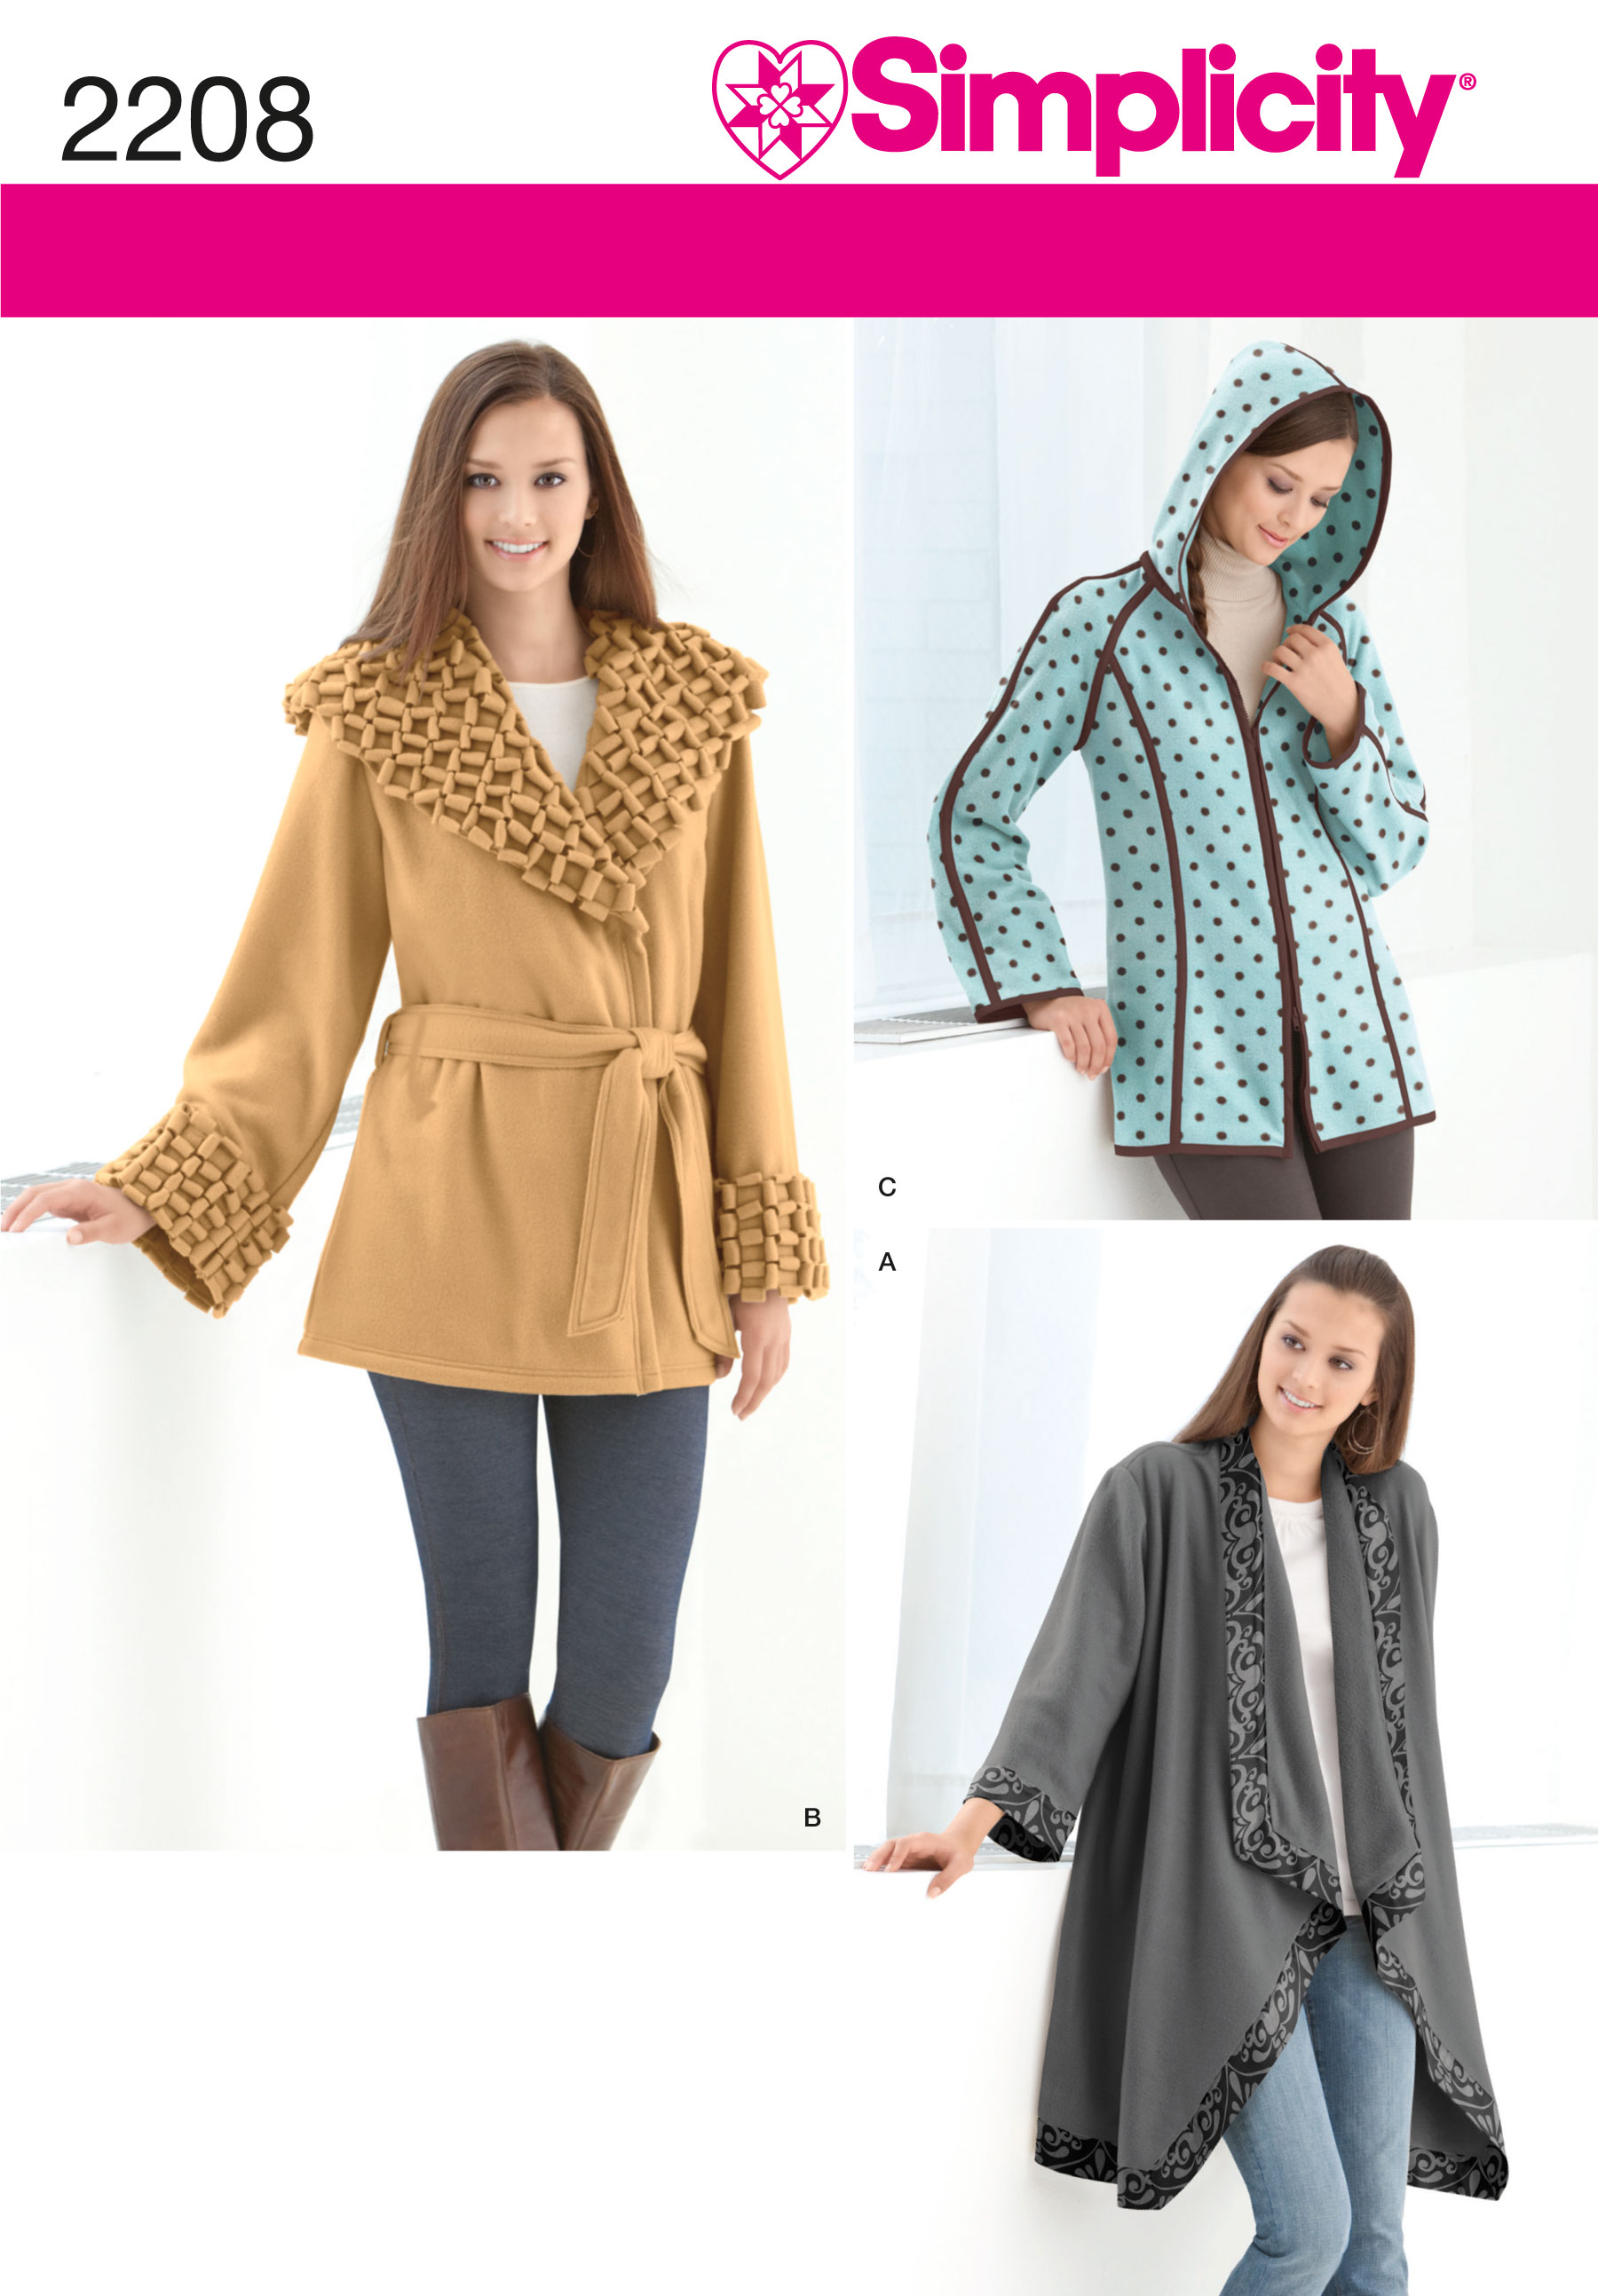 Simplicity Misses' Fleece Jackets 2208